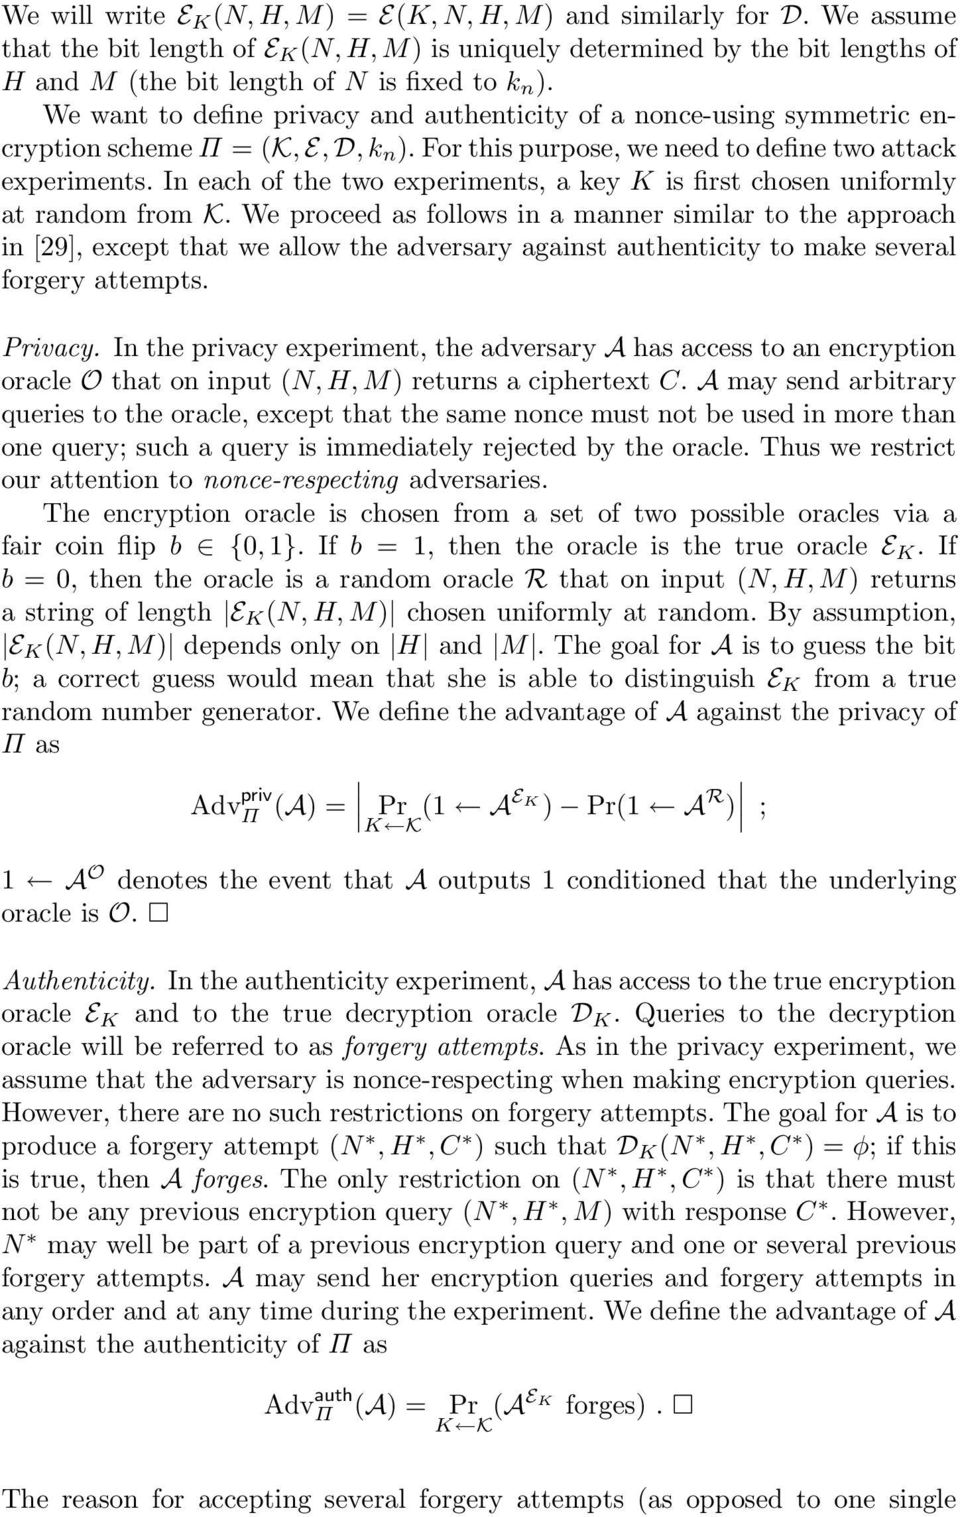 We want to define privacy and authenticity of a nonce-using symmetric encryption scheme Π = (K, E, D, k n ). For this purpose, we need to define two attack experiments.